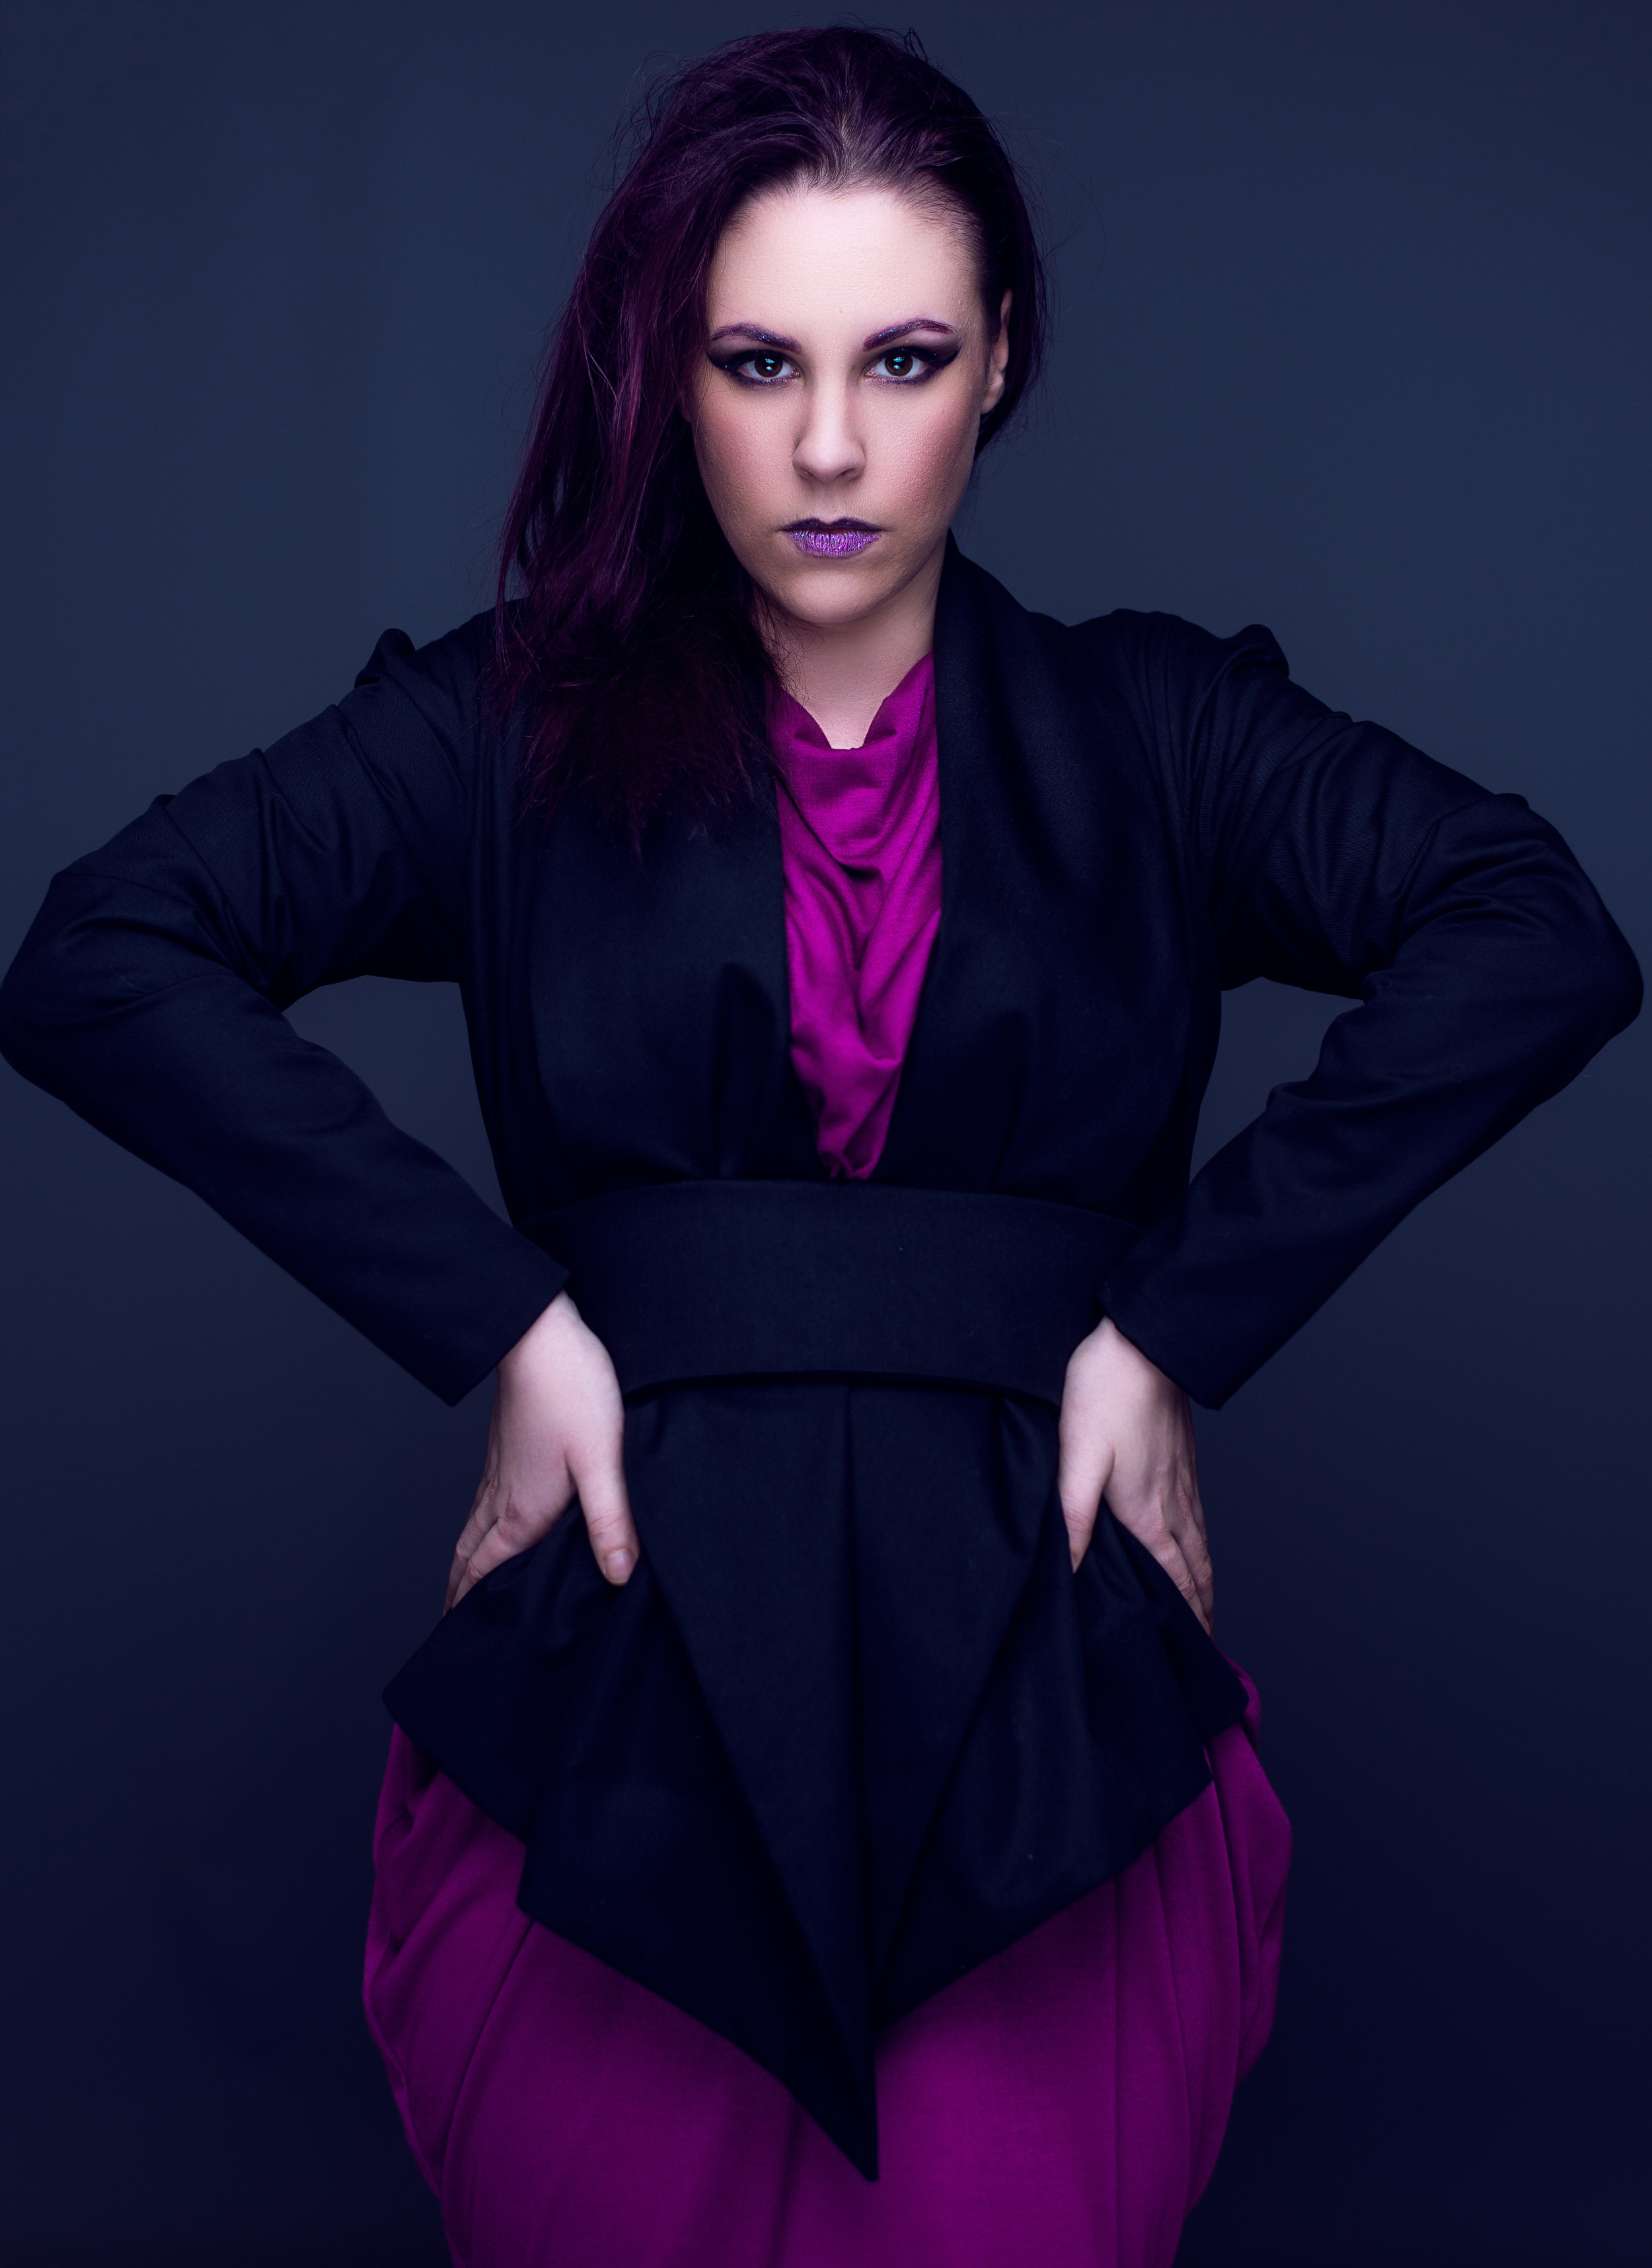 zaramia-ava-zaramiaava-leeds-fashion-designer-ethical-sustainable-mio-tailored-minimalist-jacket-black-ayaka-magenta-dress-versatile-drape-cowl-styling-studio-womenswear-models-photoshoot-vibrant